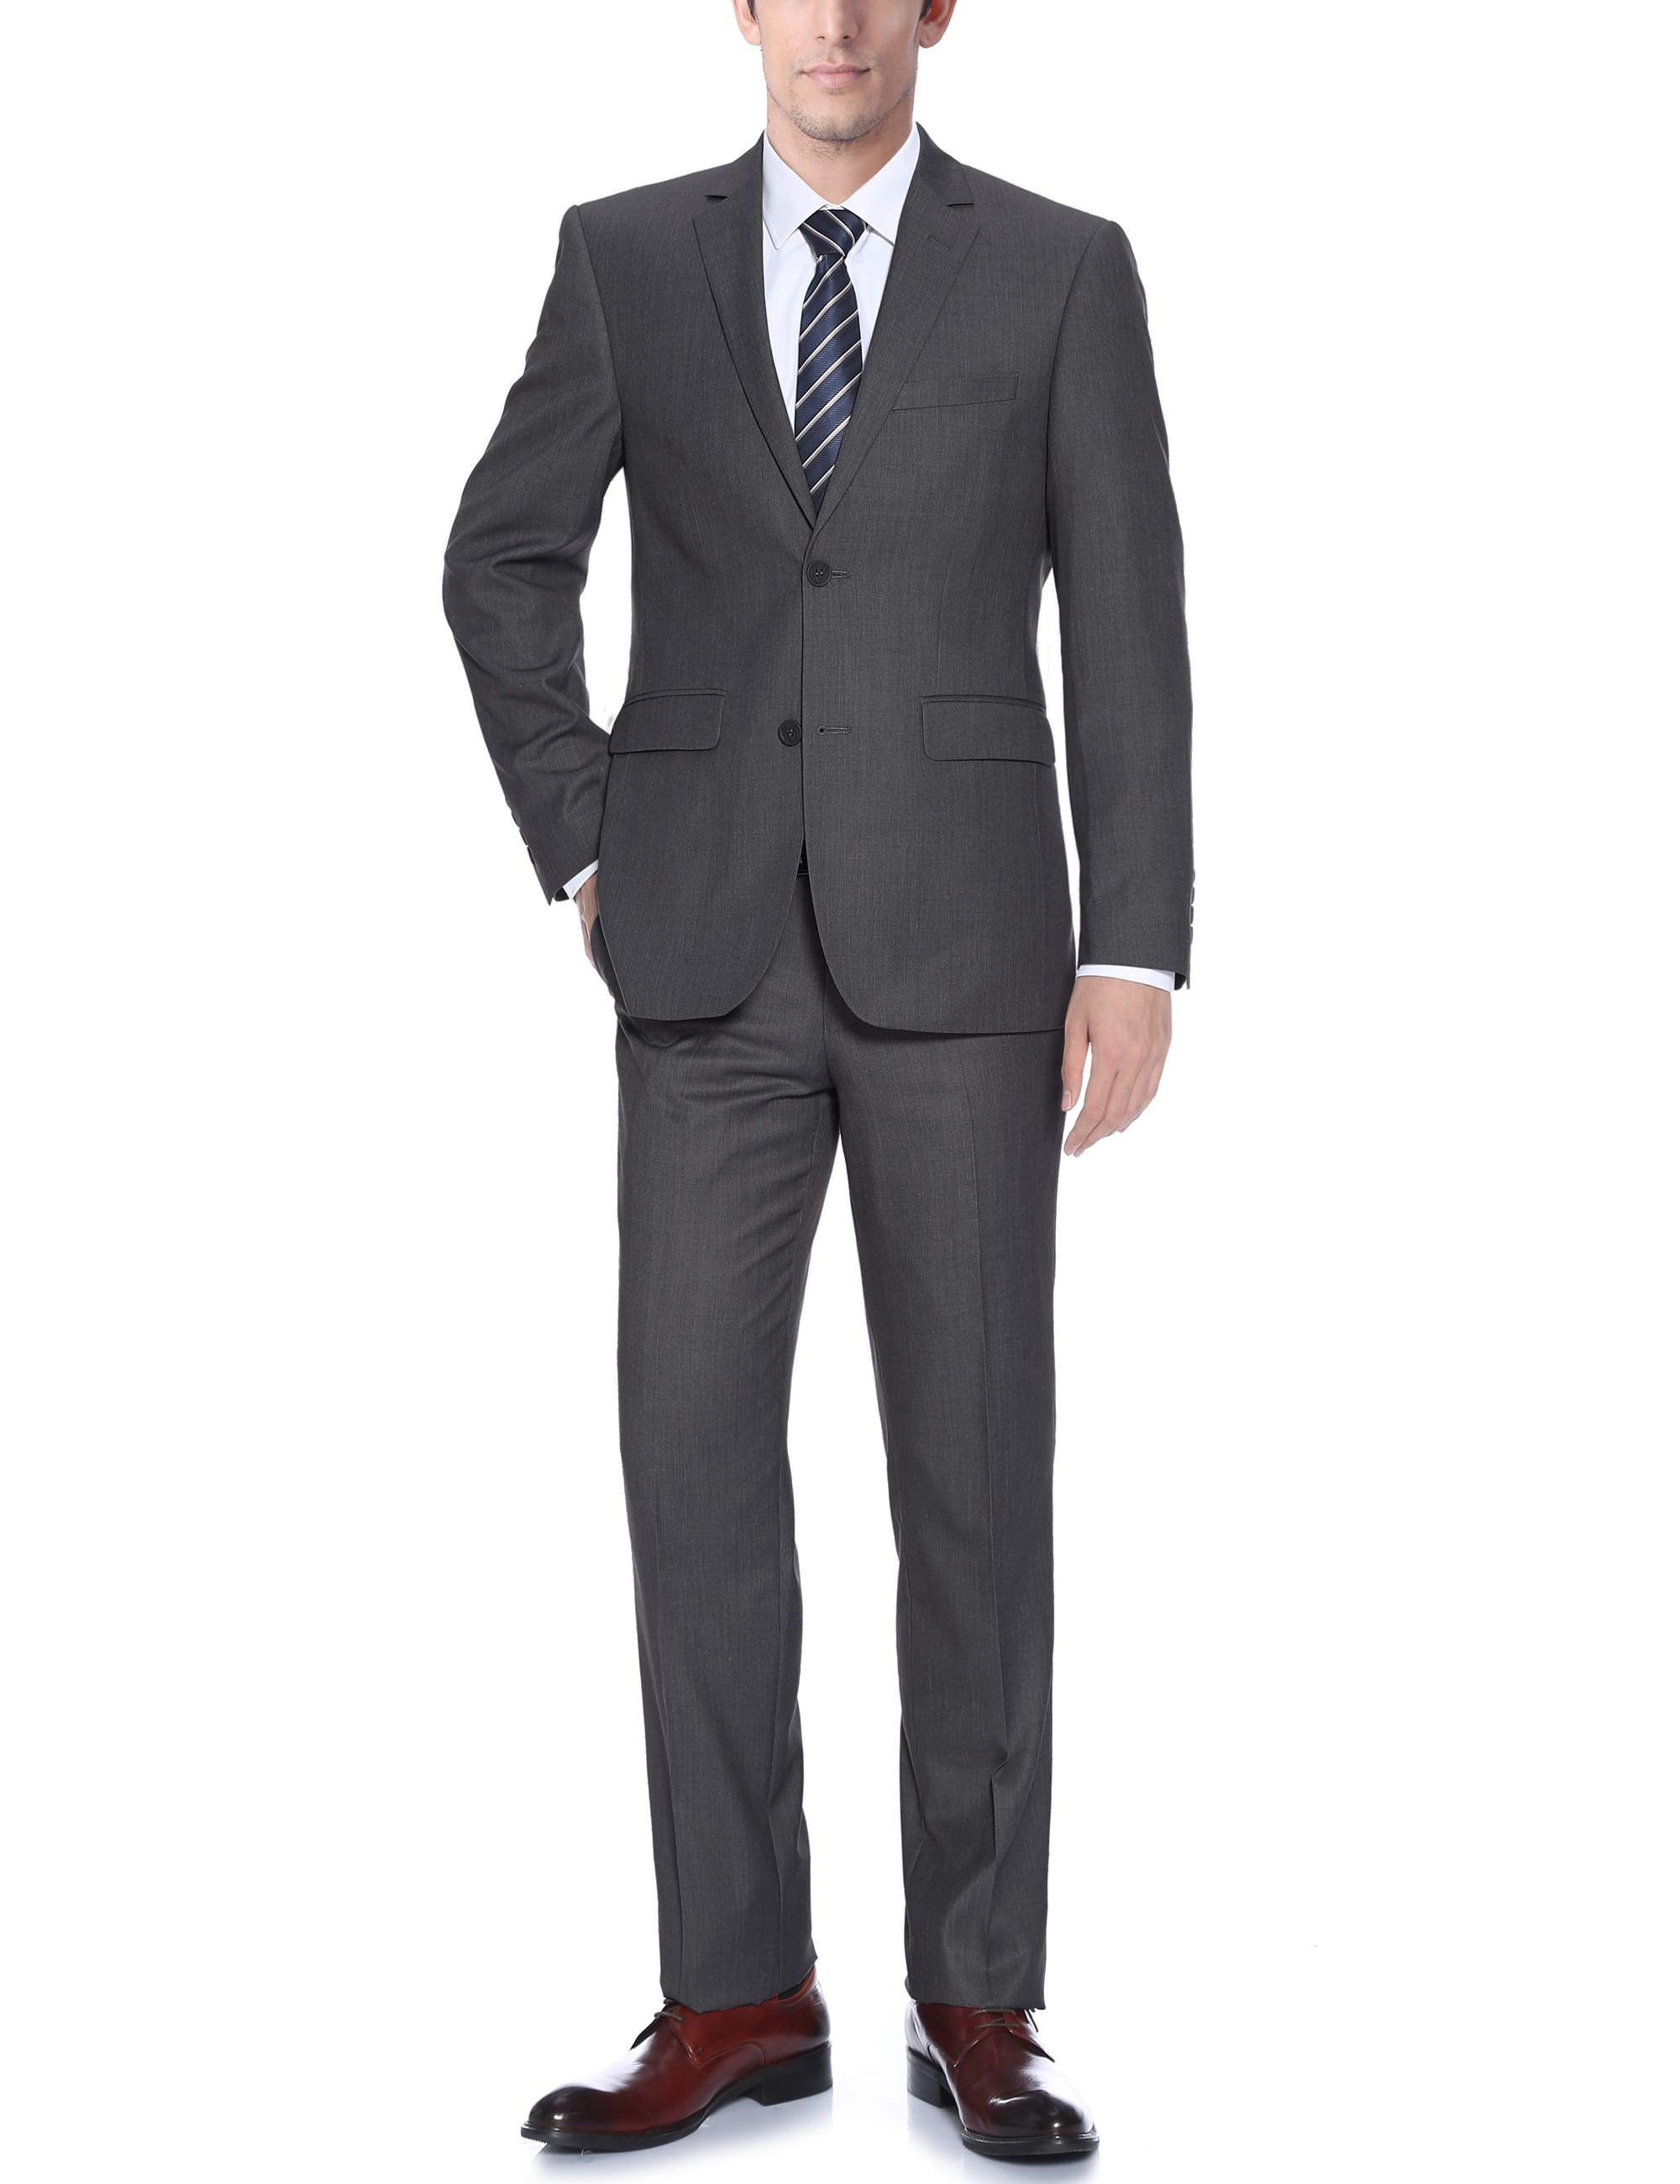 Barzetti Men's Dark Grey Slim Fit Italian Styled Two Piece Suit